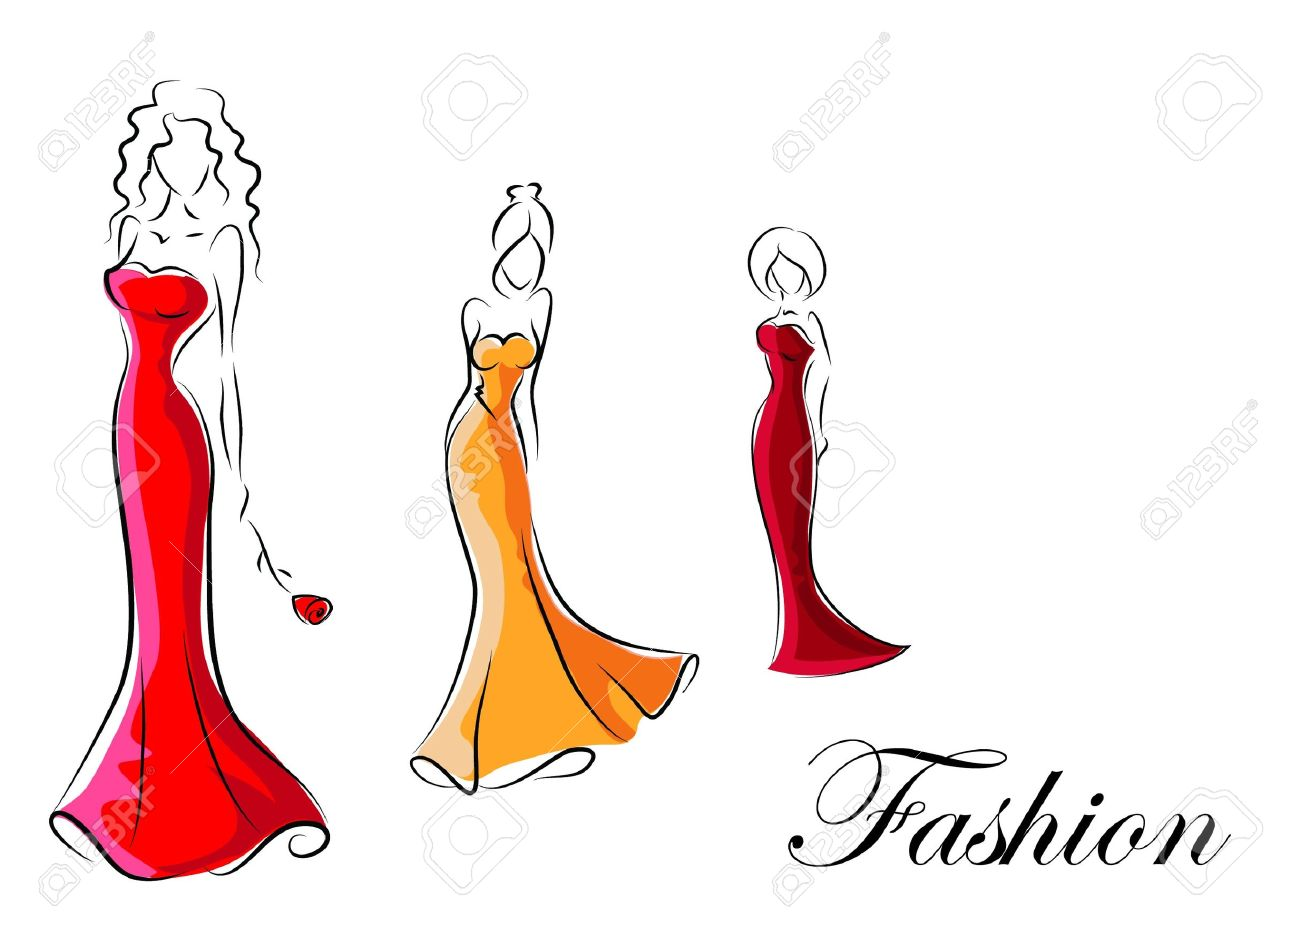 Fashion woman, hand drawing illustration Stock Vector - 16873082